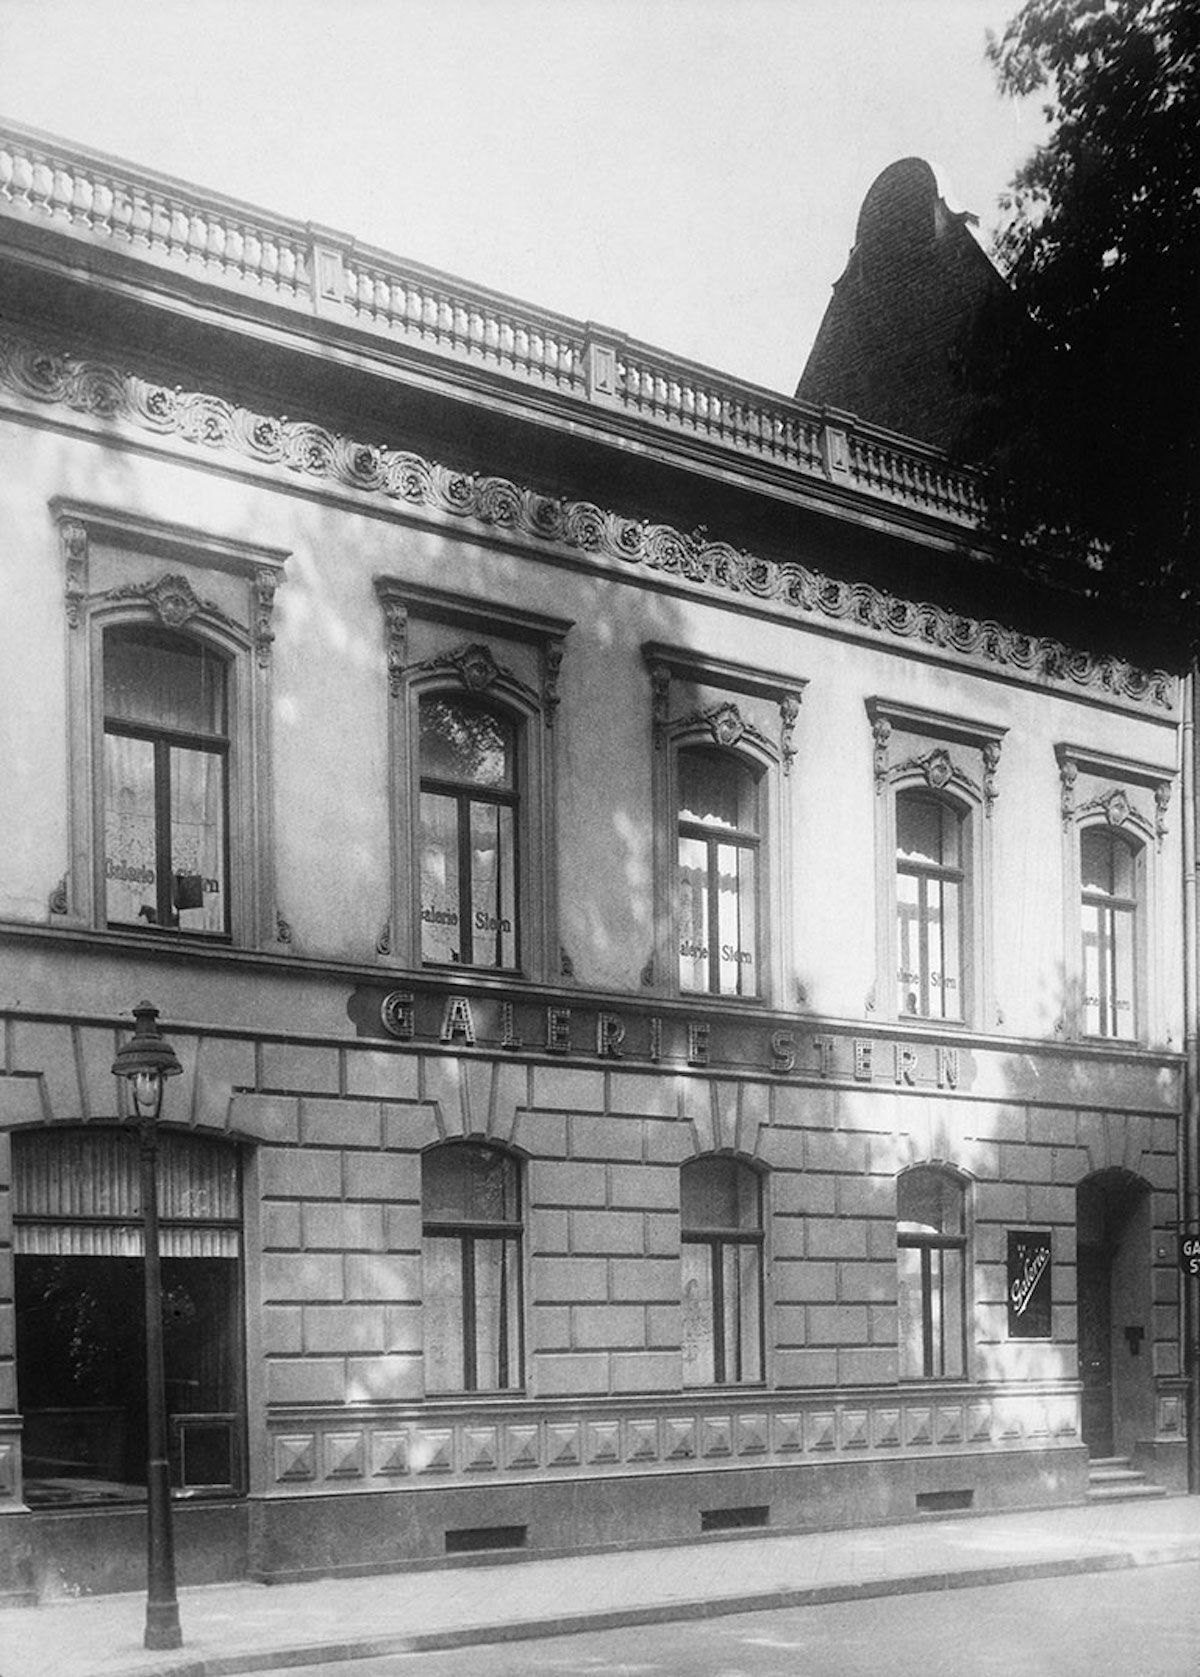 Galerie Stern in Düsseldorf, before 1937. Photo courtesy the National Gallery of Canada, via Wikimedia Commons.